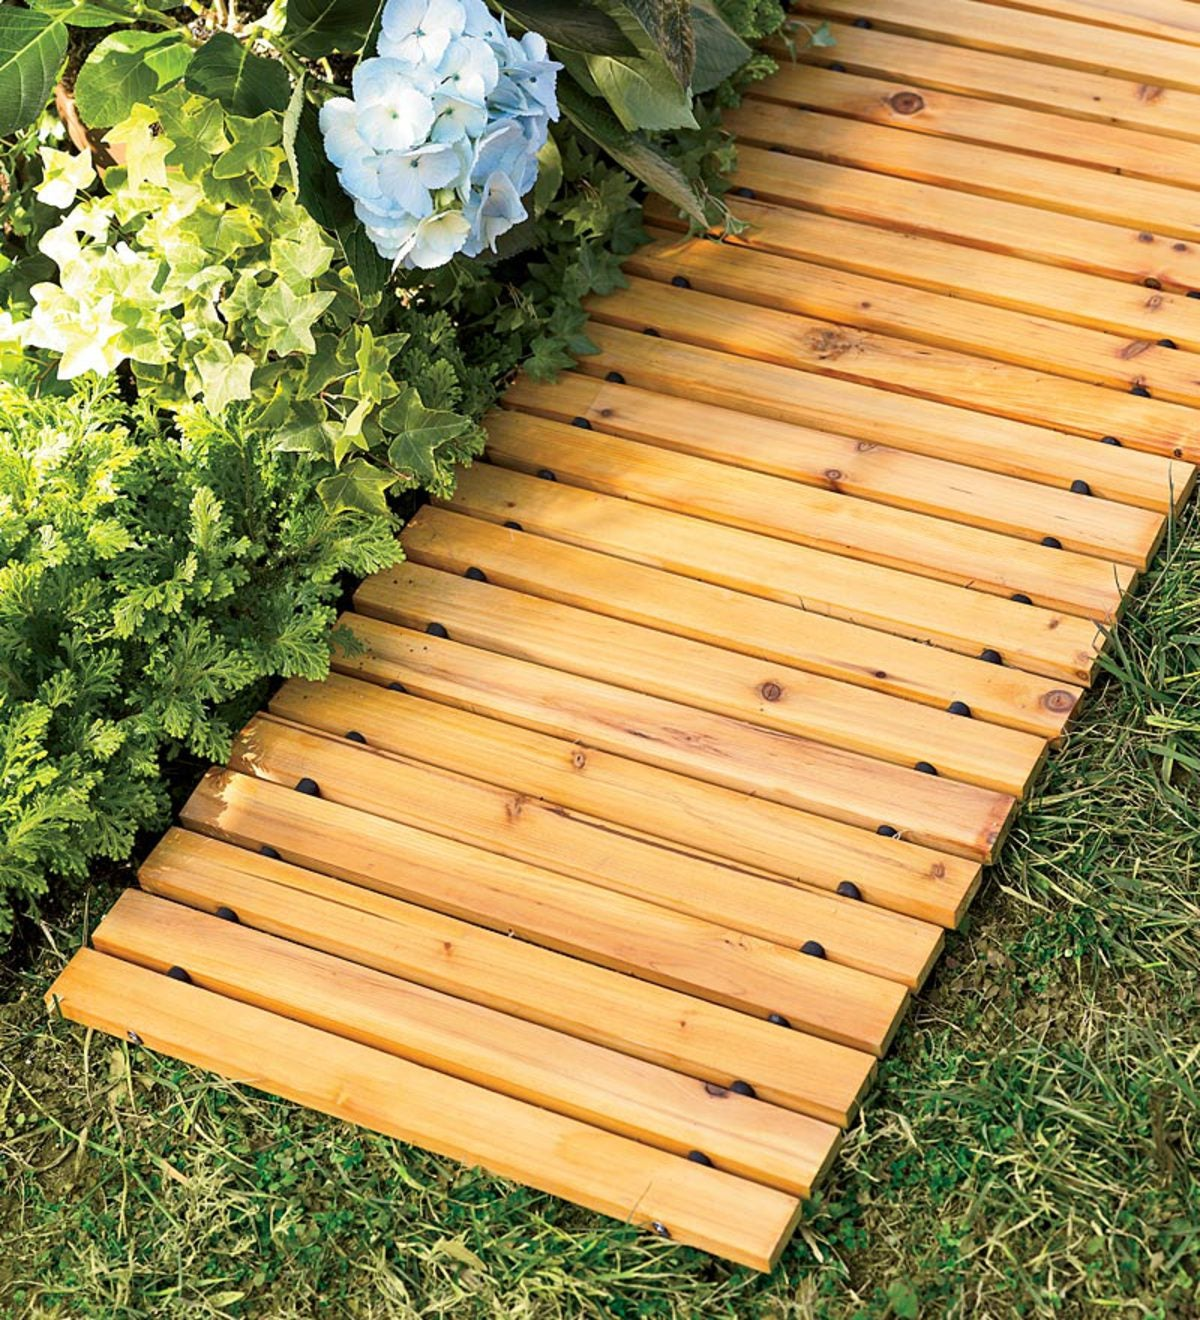 8' Weather-Resistant Straight Cedar Pathway